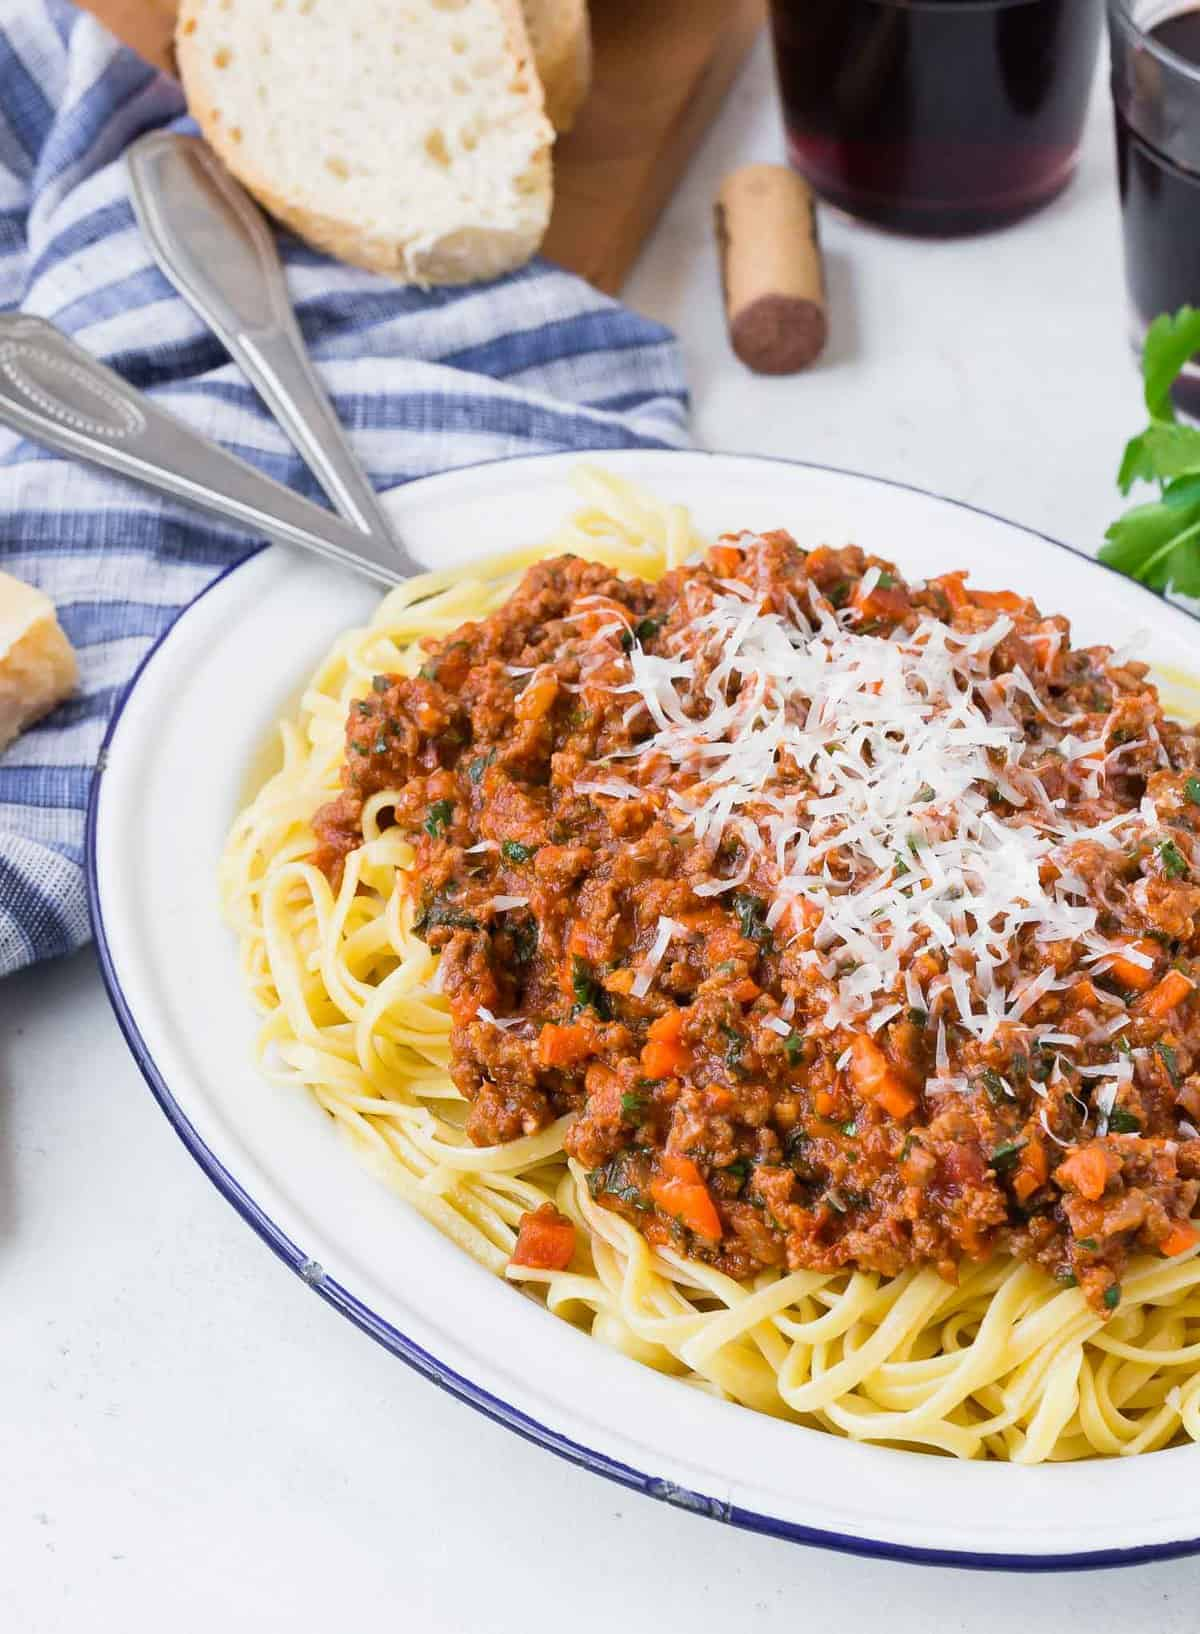 Linguine on a large platter, topped with meat sauce, bread and wine in background.